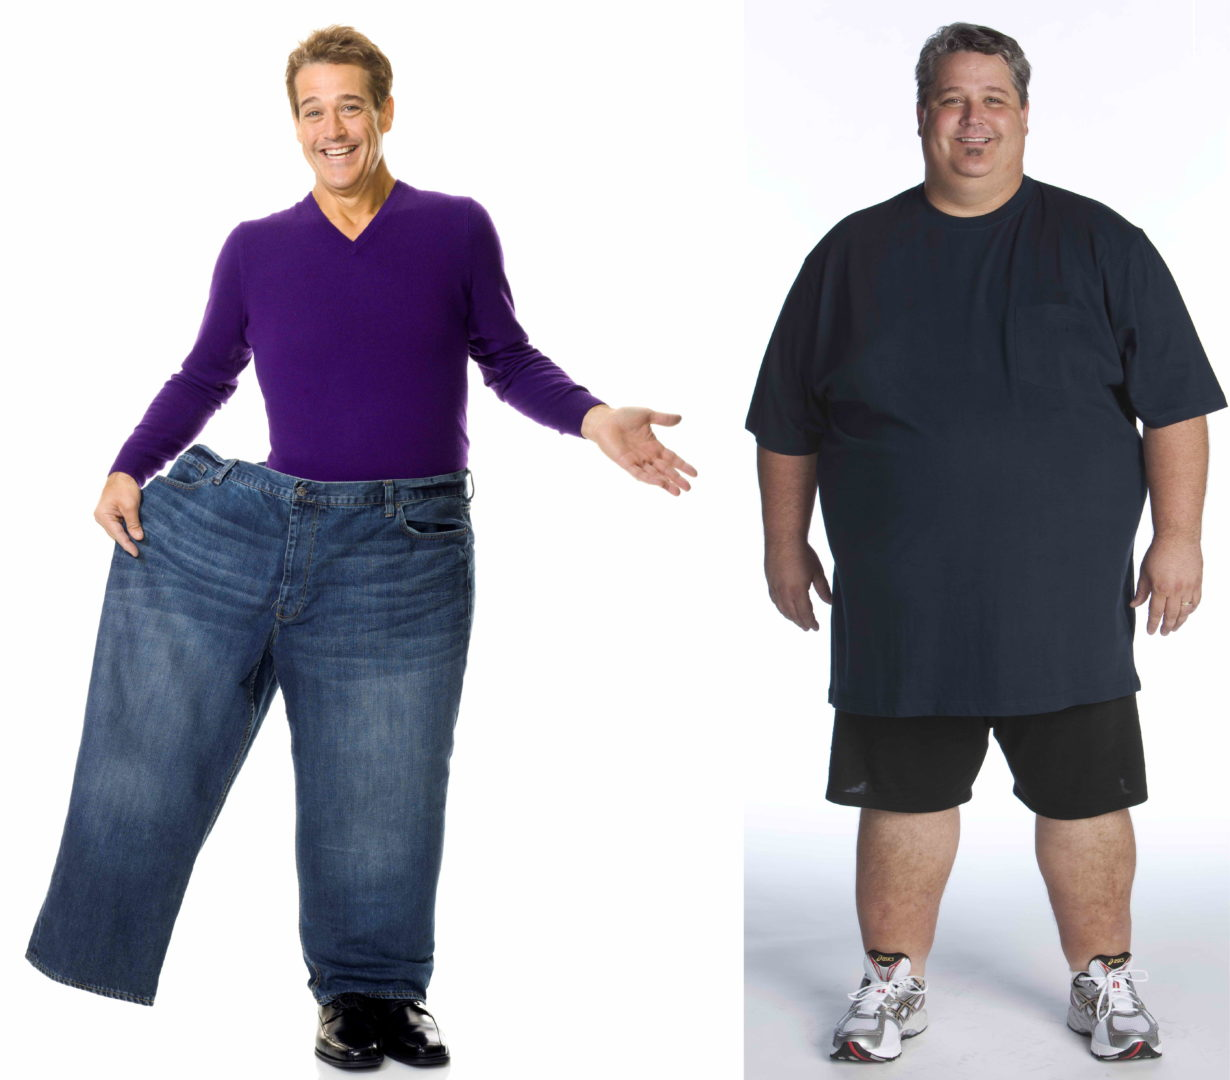 The Biggest Loser – Extreme Weight Loss | Hotze Health